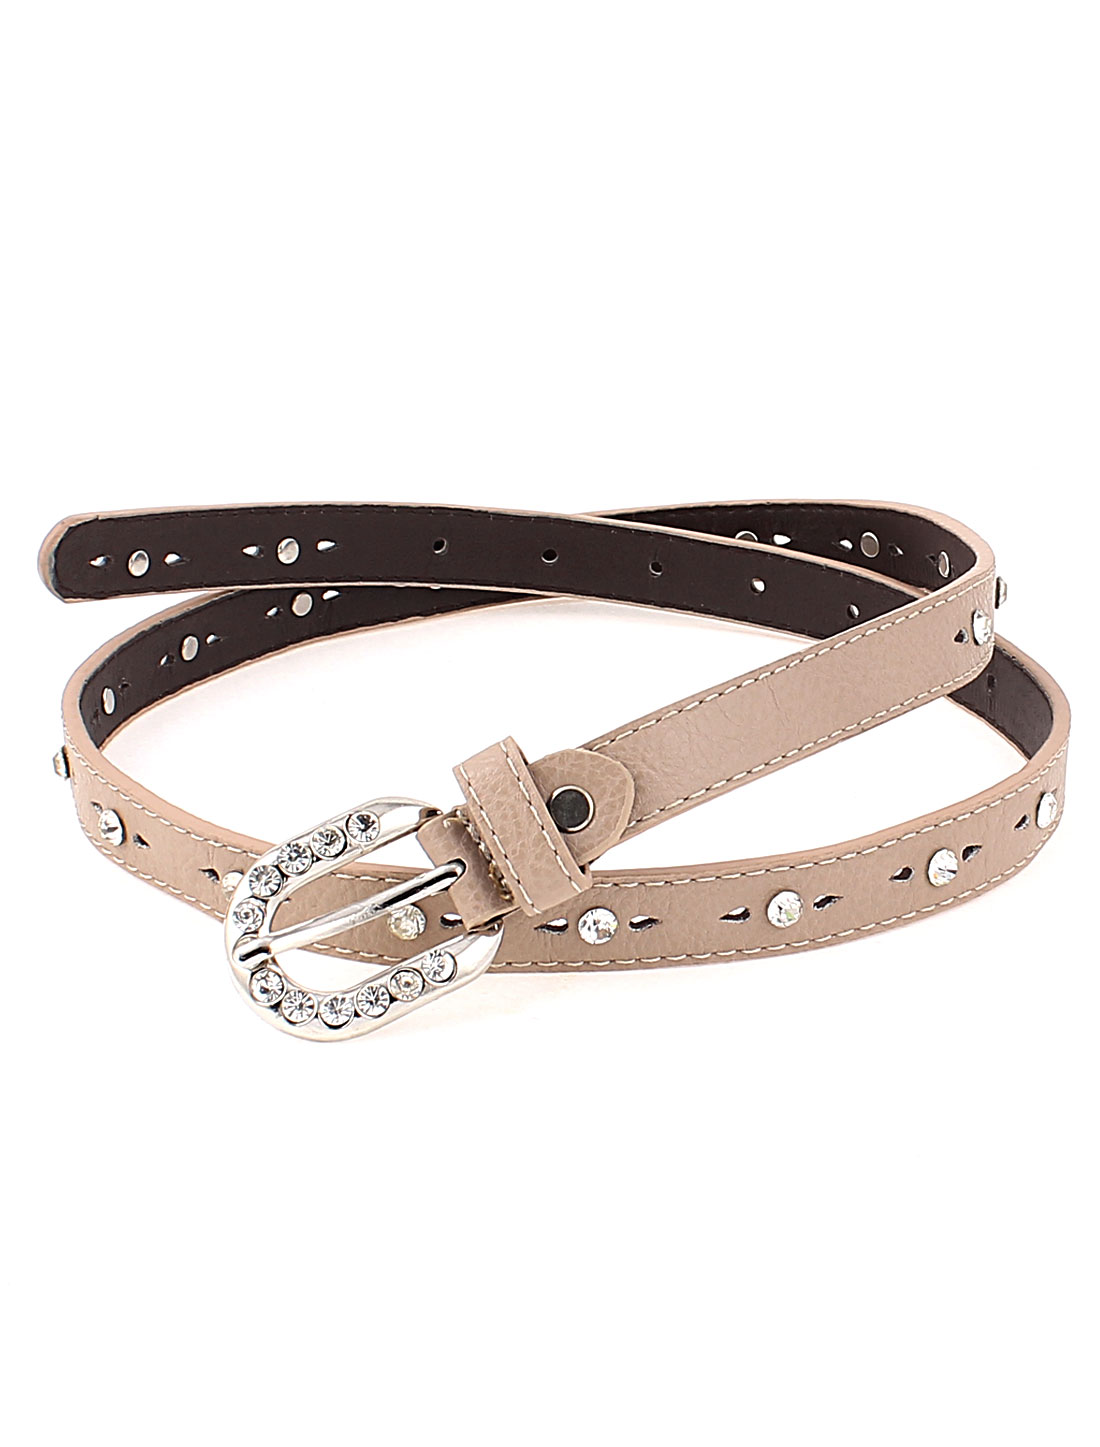 Lady Rhinestone Decor Metal Single Prong Buckle Waistbelt Belt